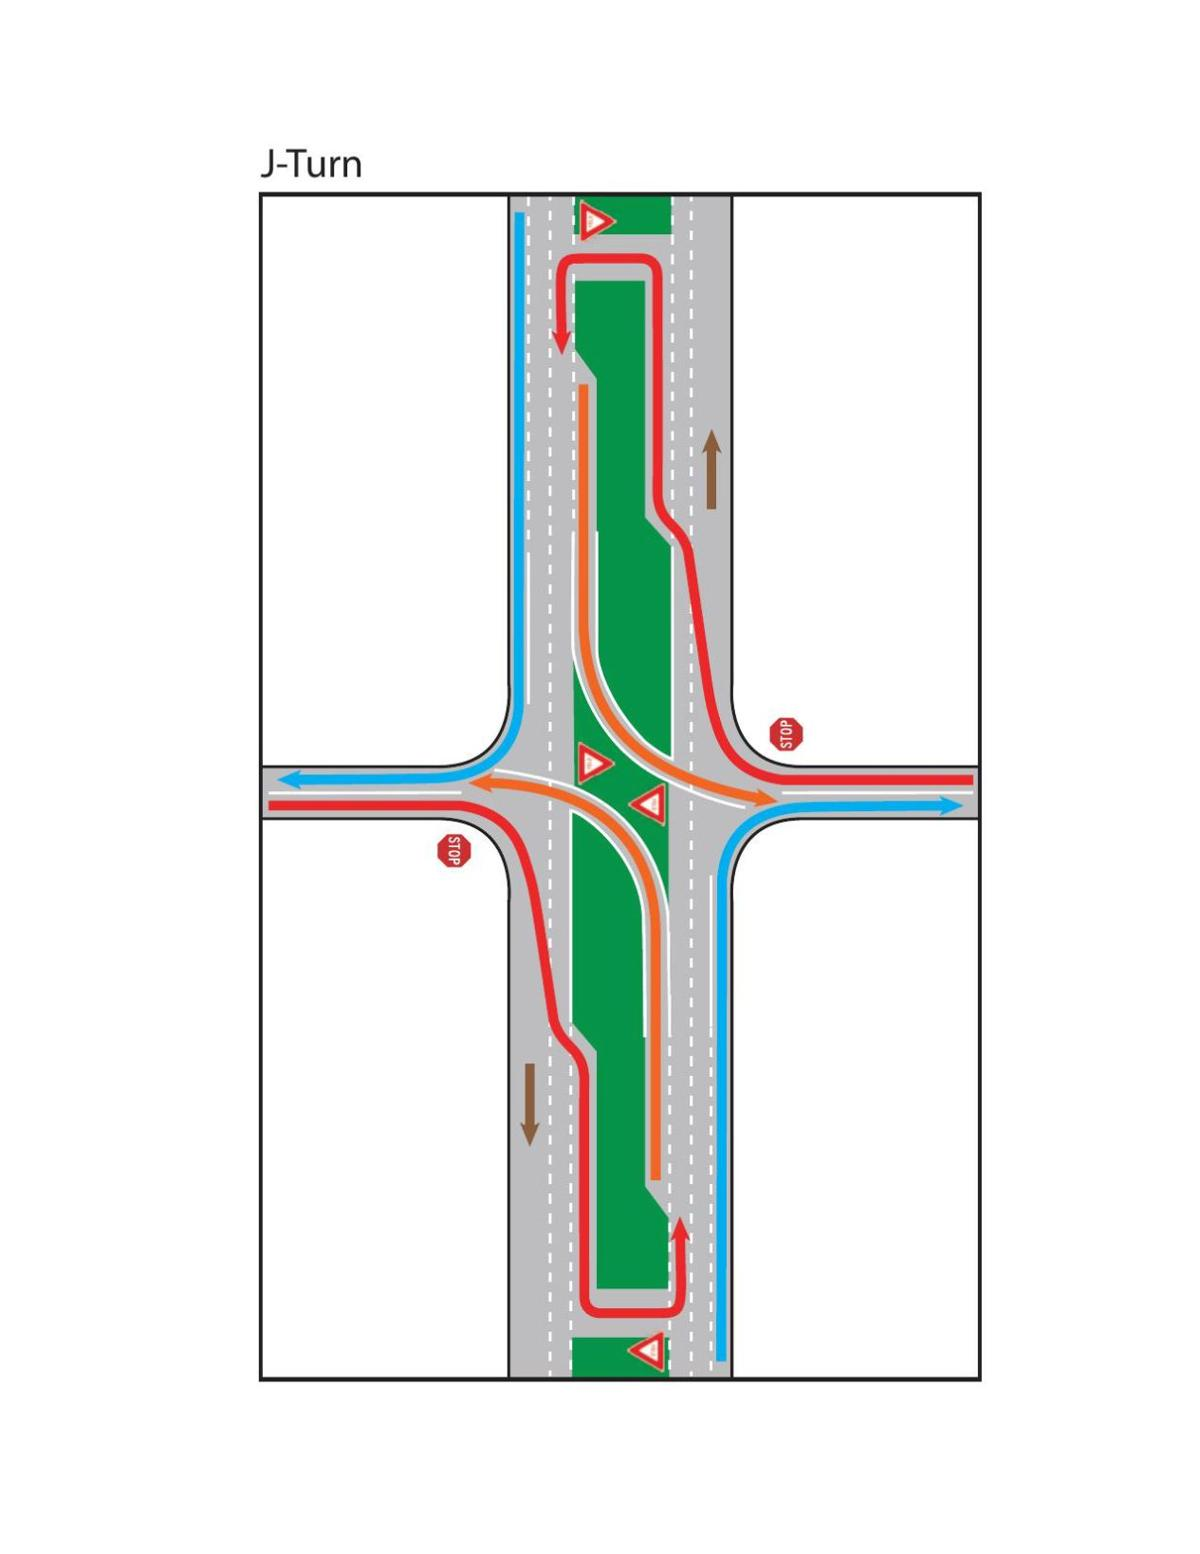 The image below illustrates a typical J-turn. This isn't the design for this specific project